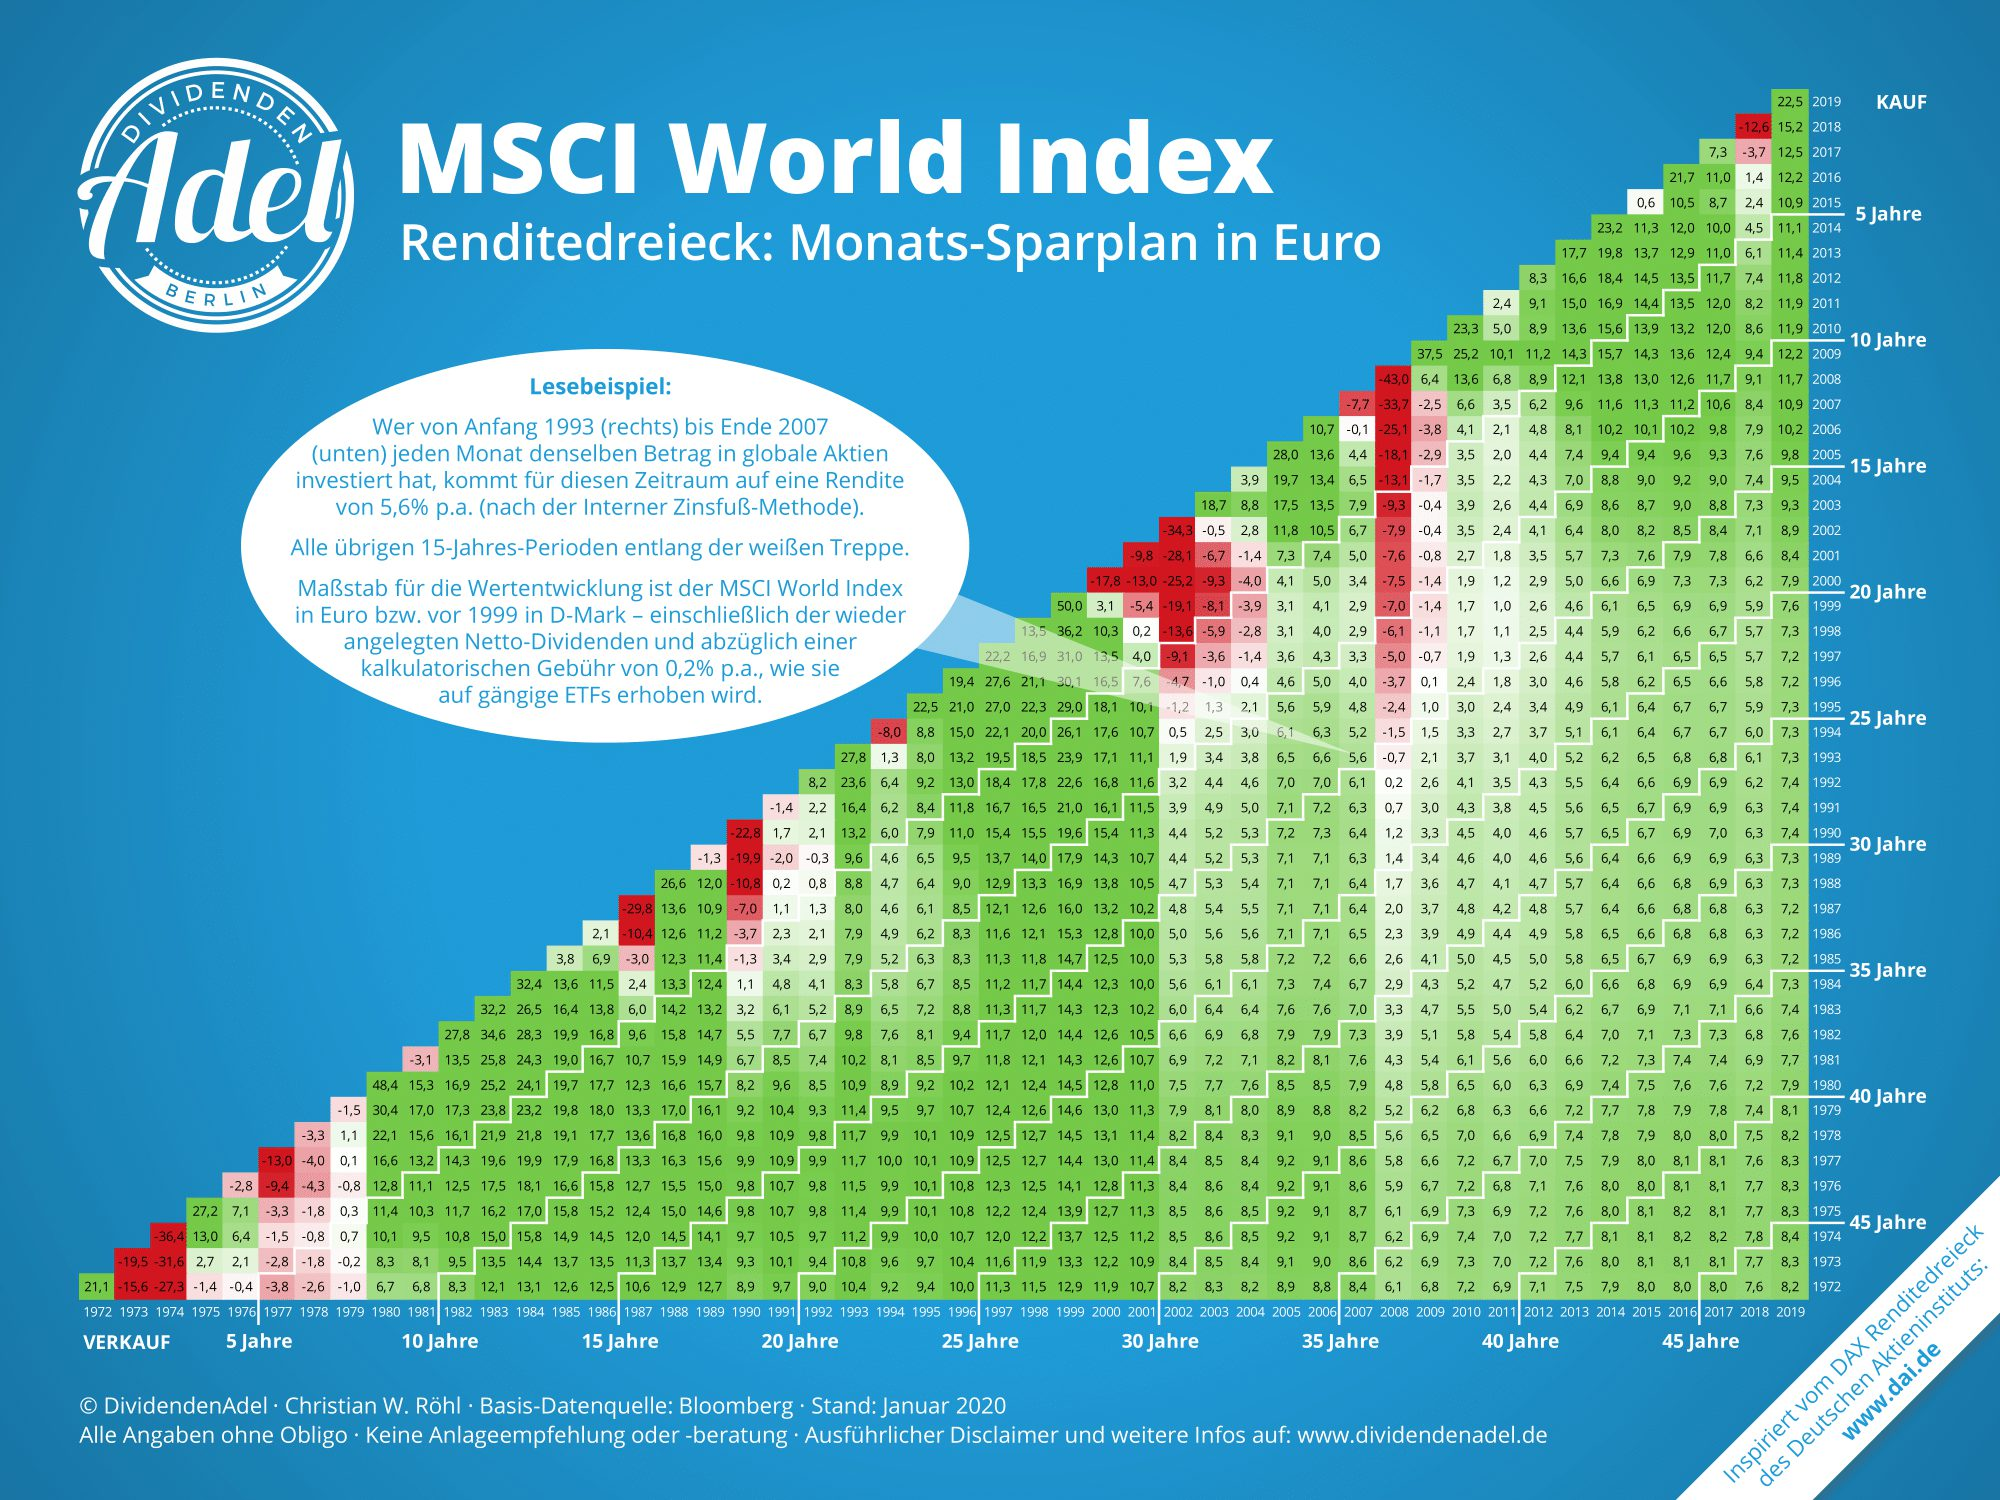 MSCI World Index - Sparplanentwicklung